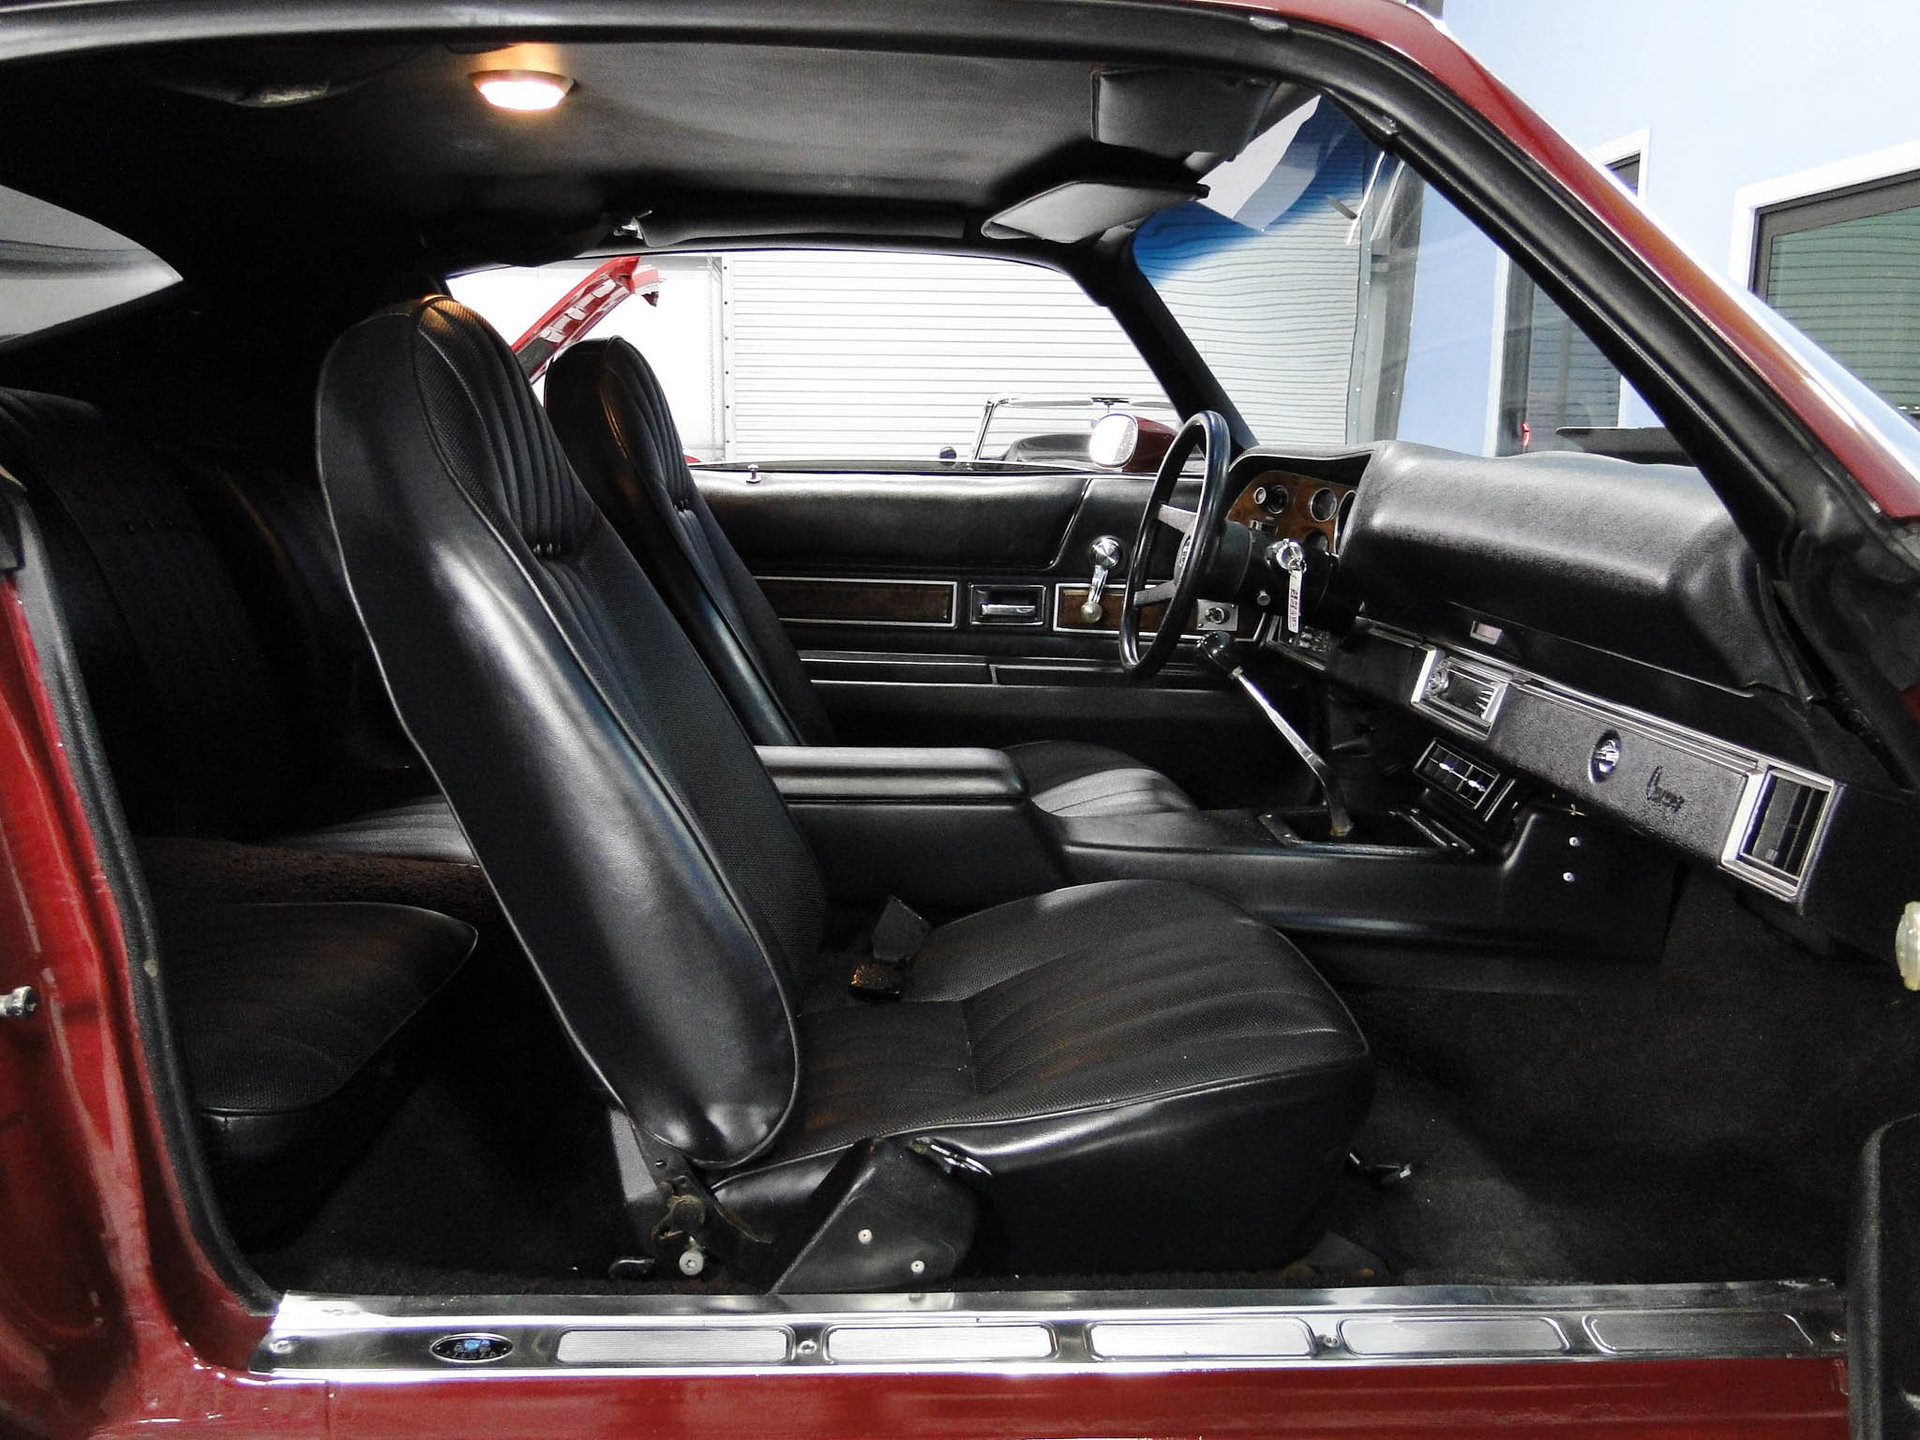 1973 Chevrolet Camaro Classic Cars Amp Used Cars For Sale